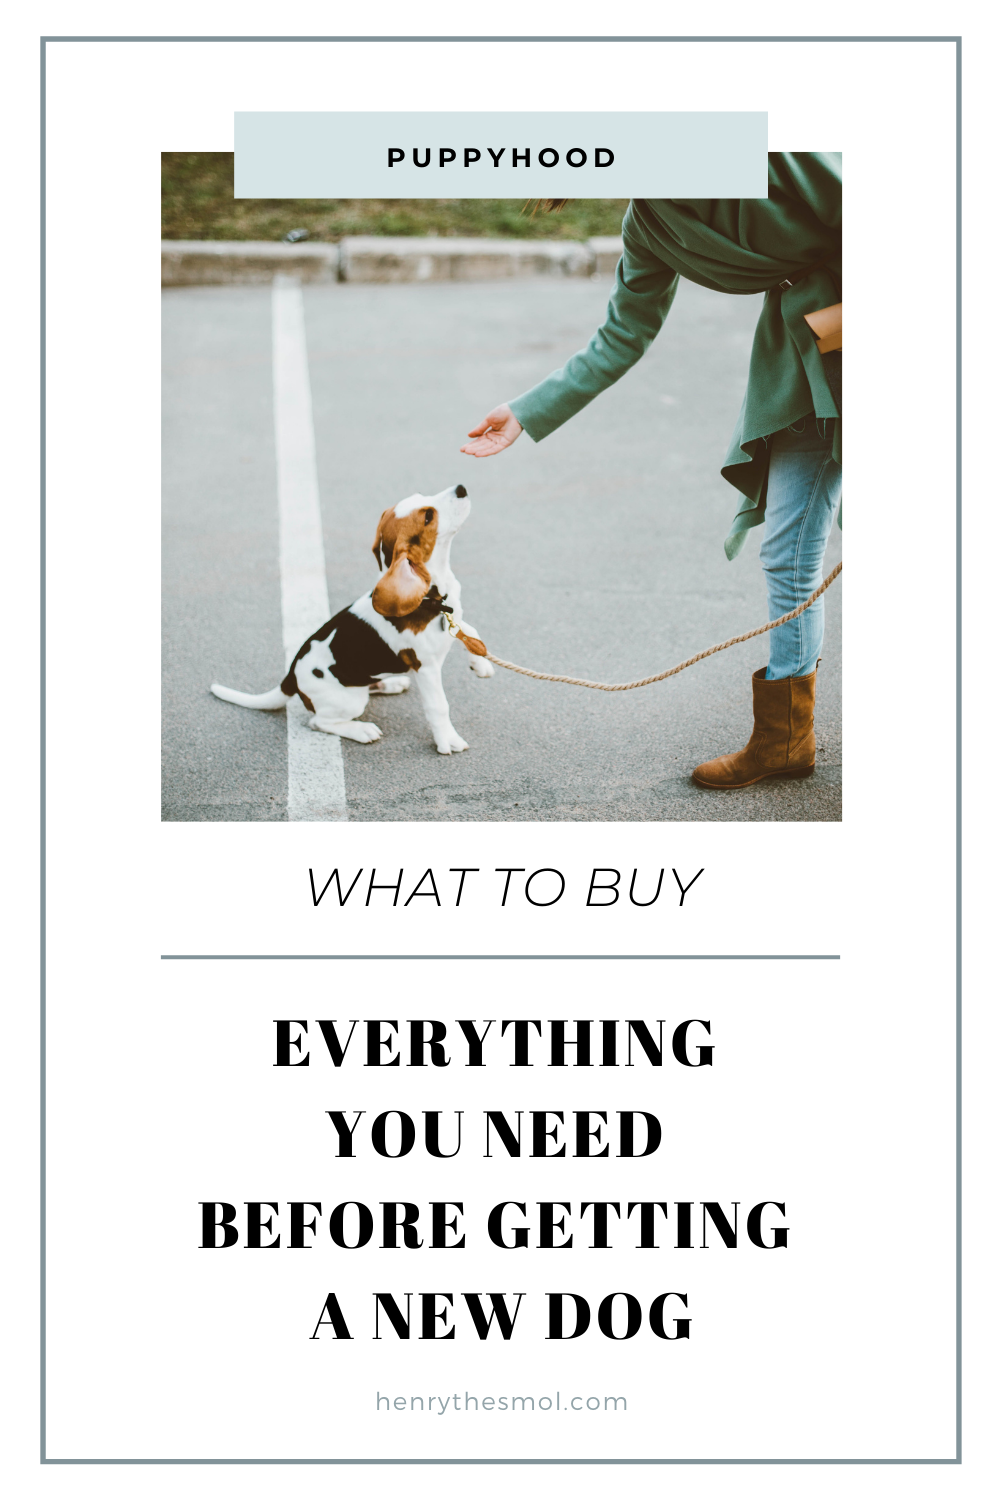 Preparing for Puppy: What You Need To Welcome A Dog